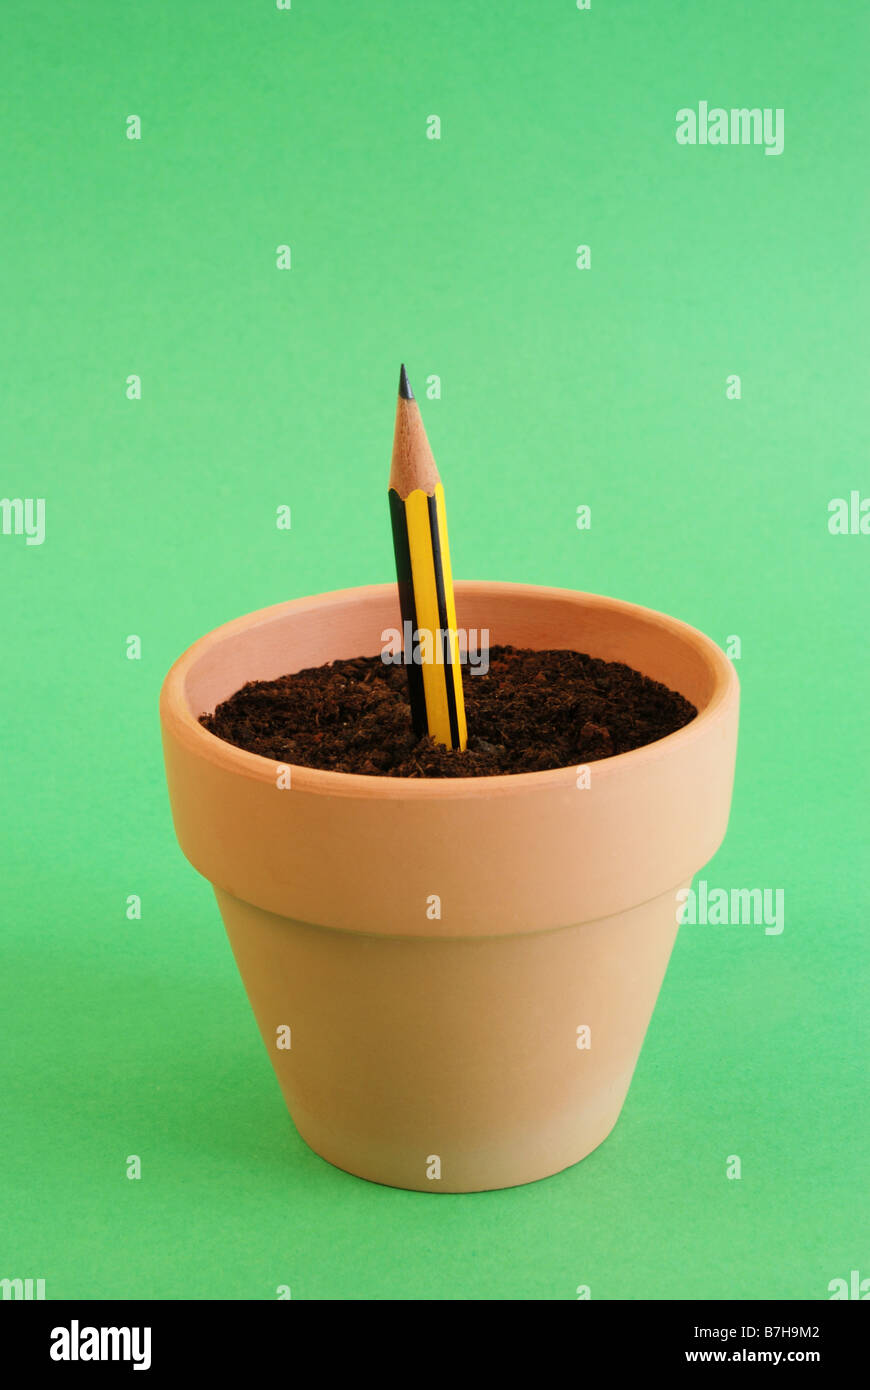 Pencil sprouting in flower pot. - Stock Image